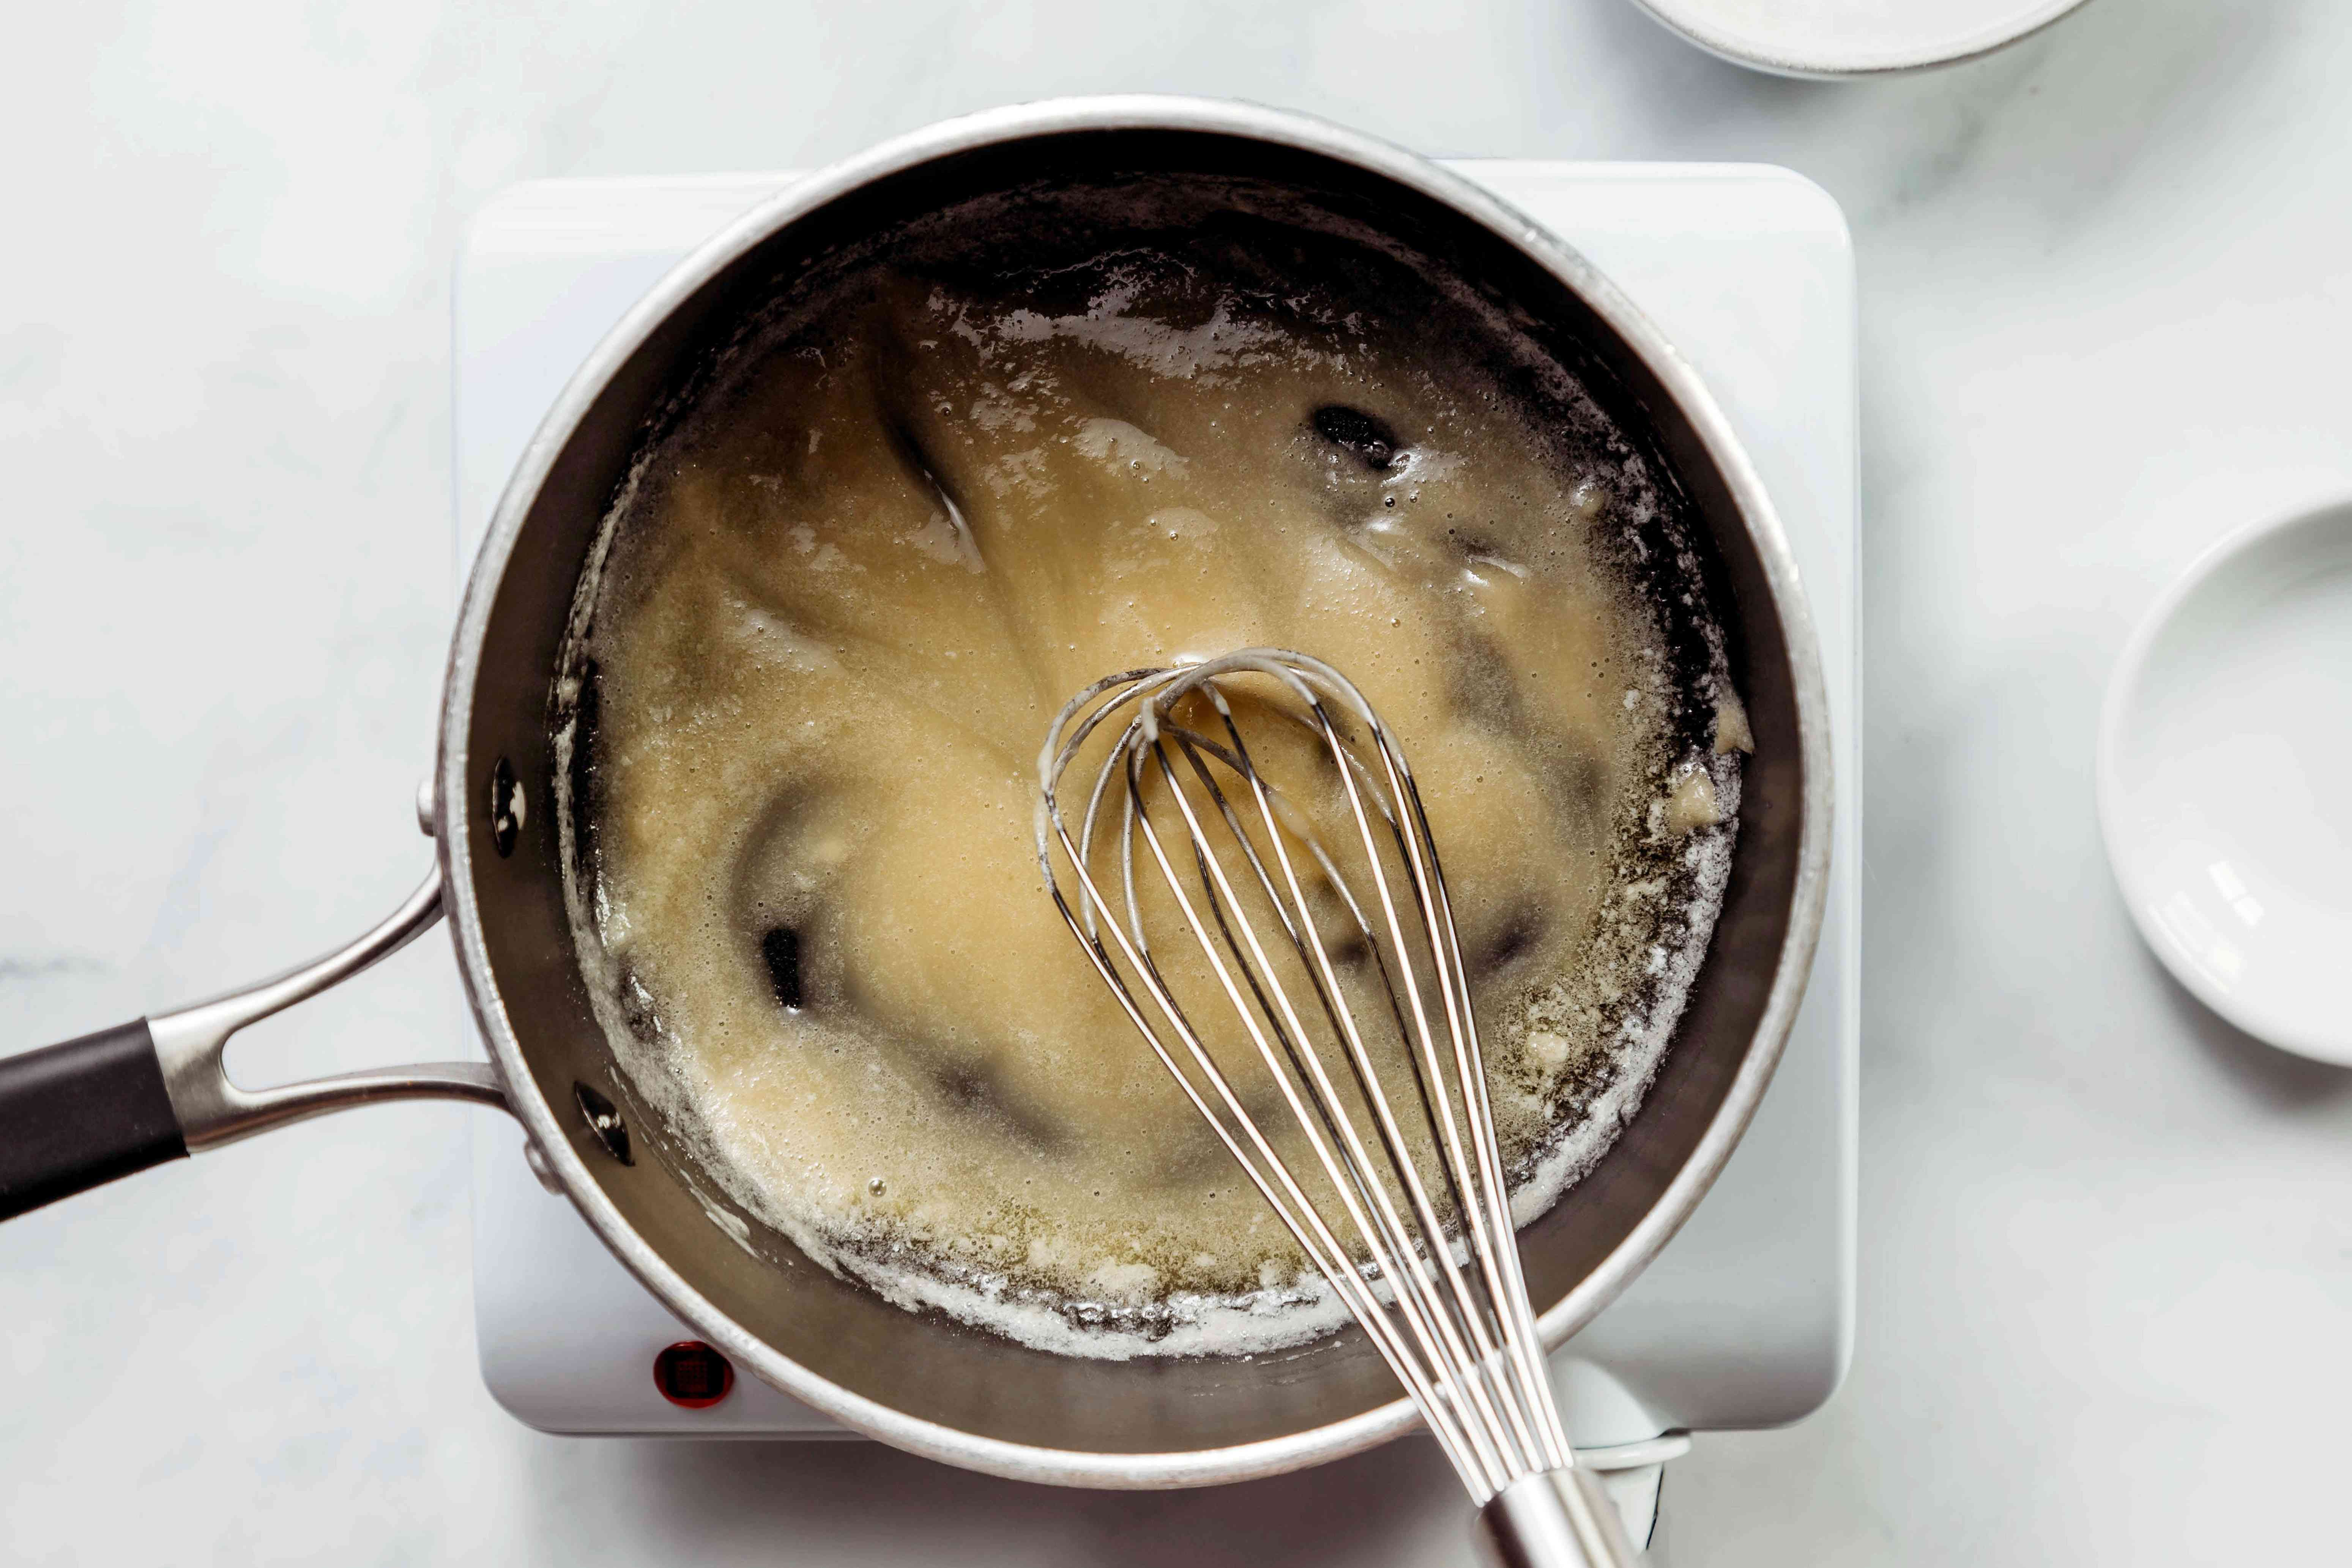 Butter and flour mixture whisked together in a saucepan